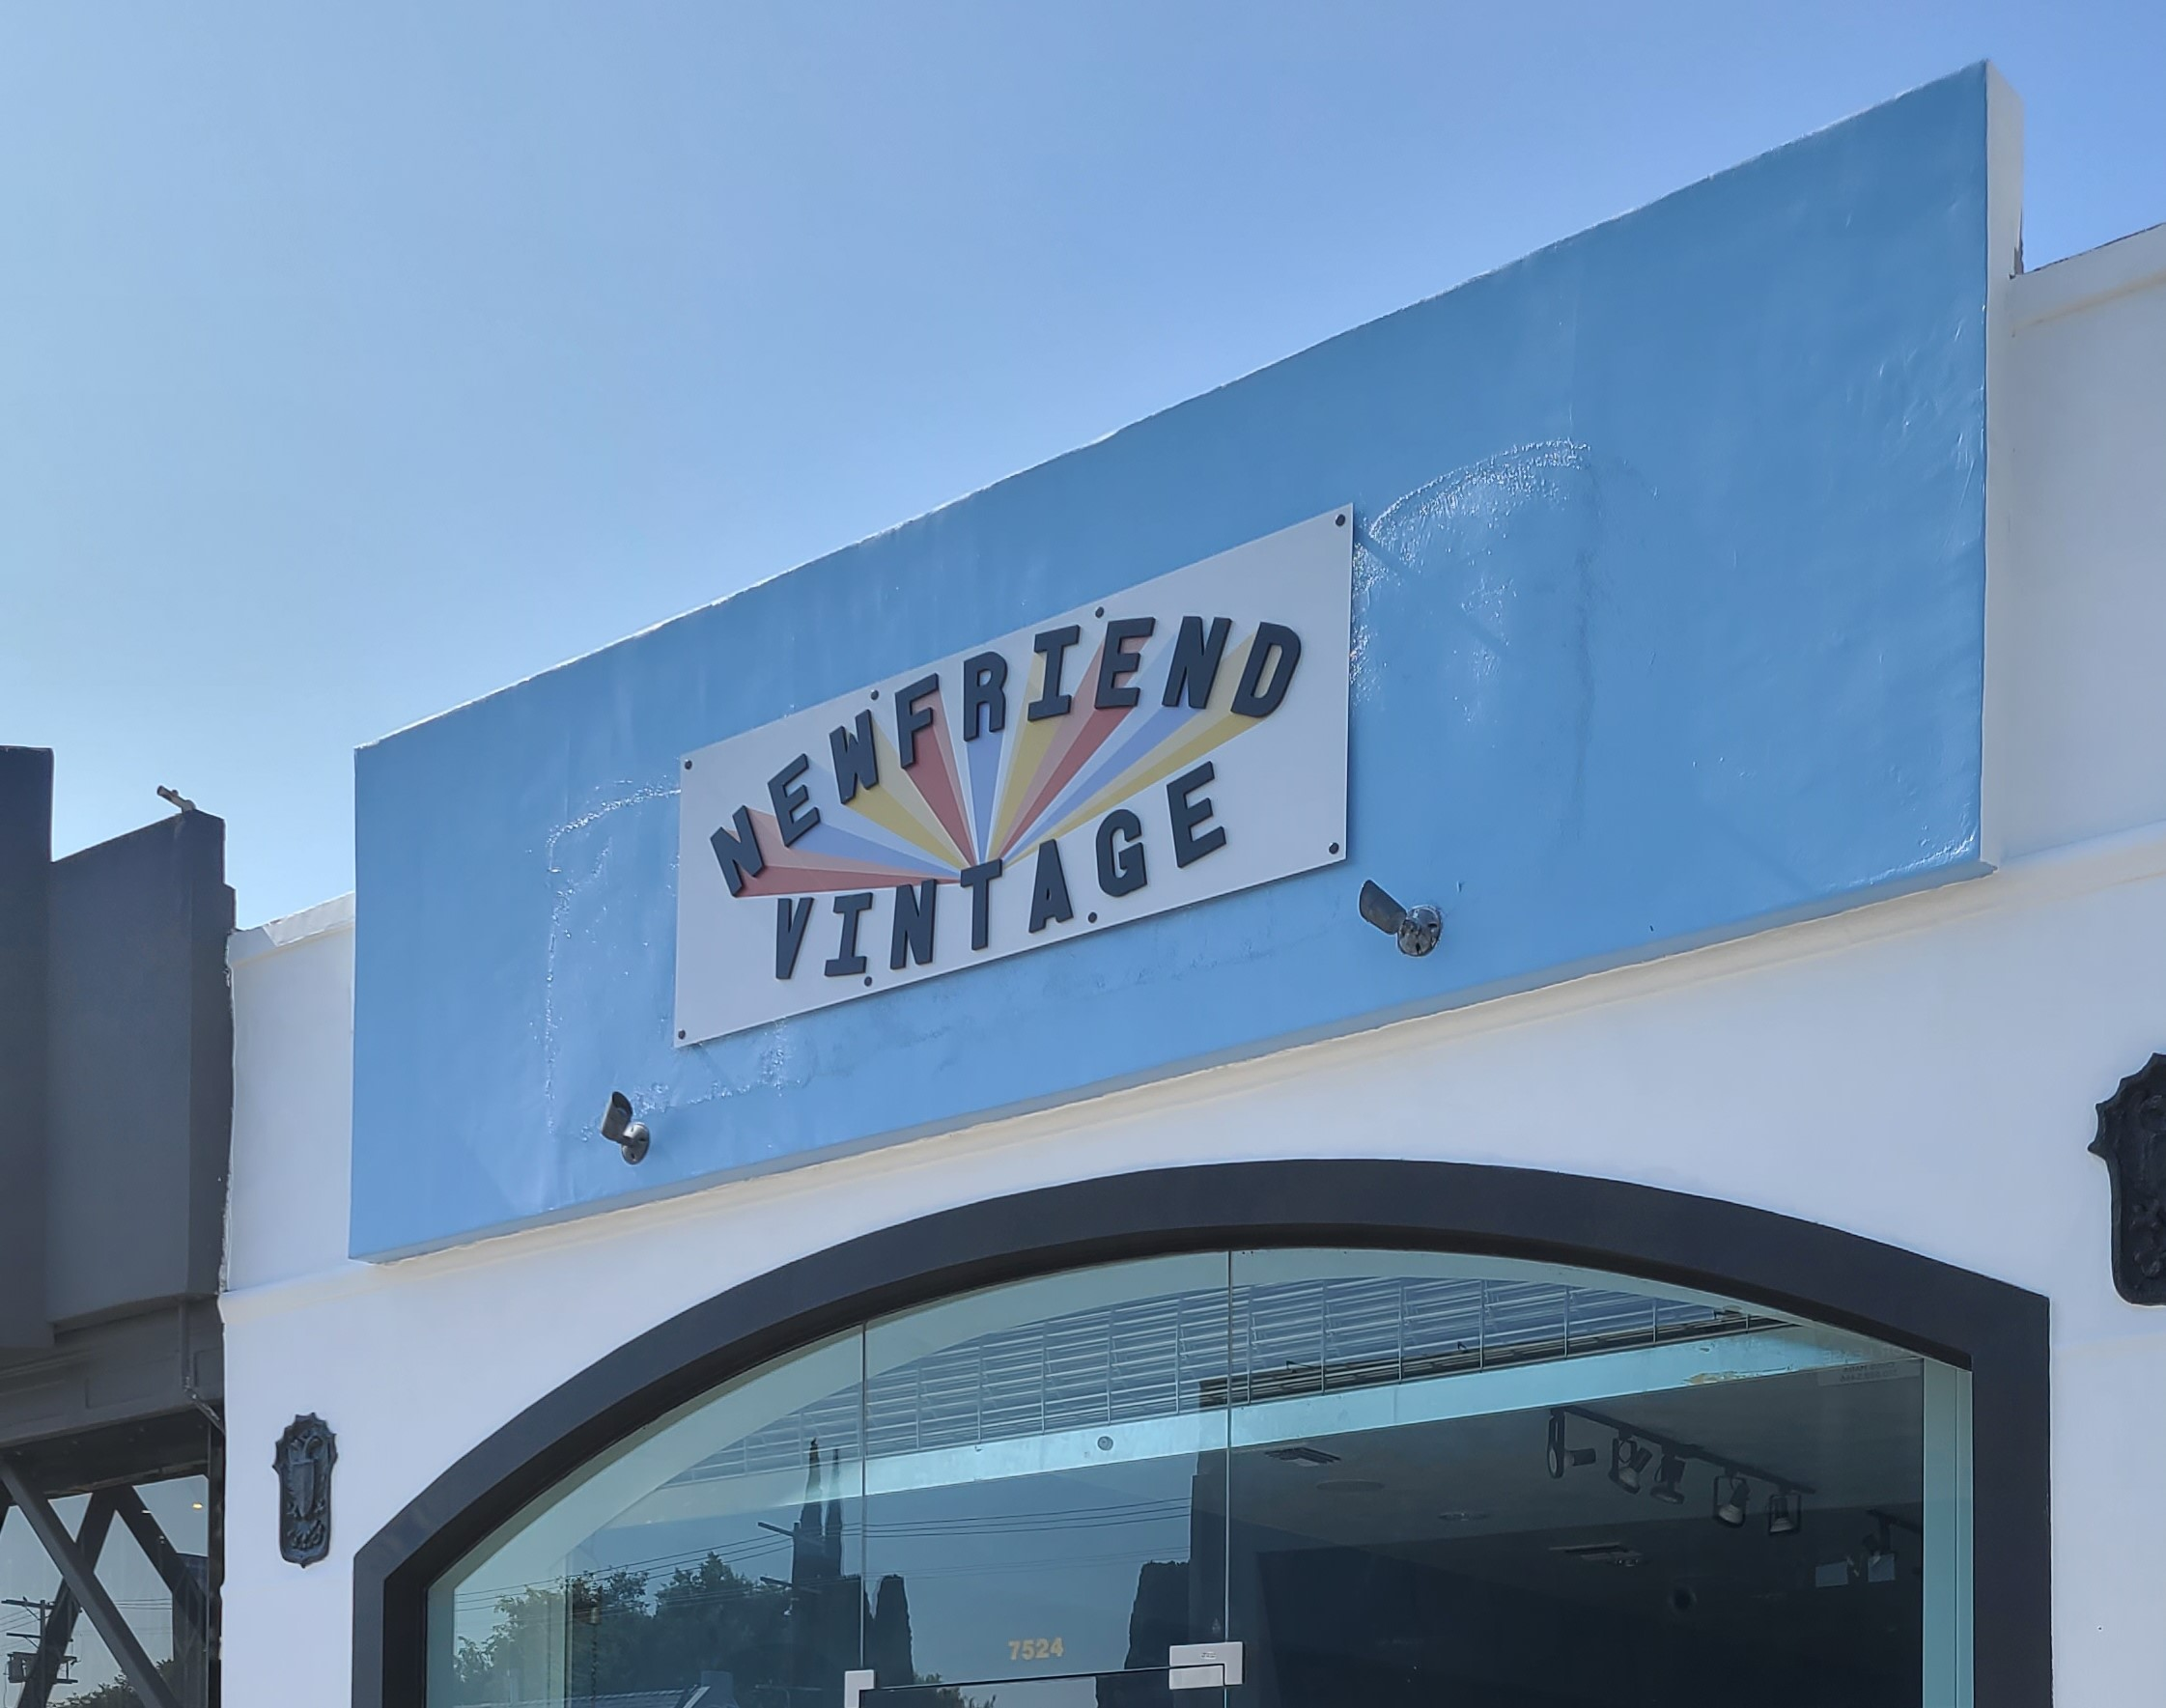 Unique signage will help make your brand stand out and attract customers. Like this custom storefront sign we for Newfriend Vintage's Los Angeles branch.